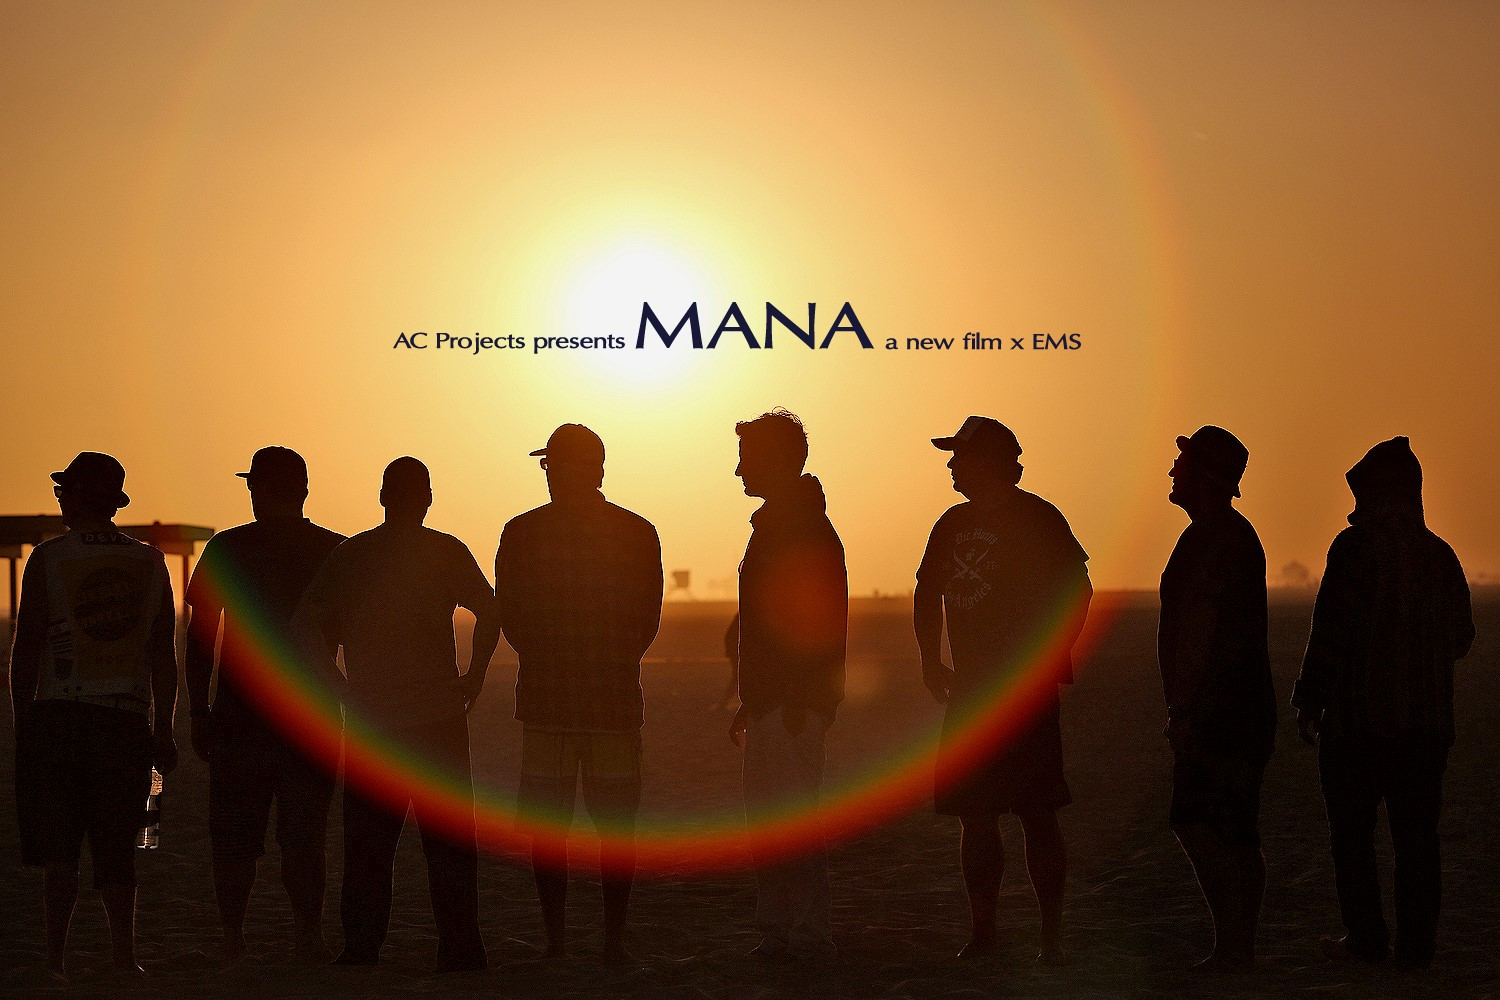 The Artists of the Film MANA